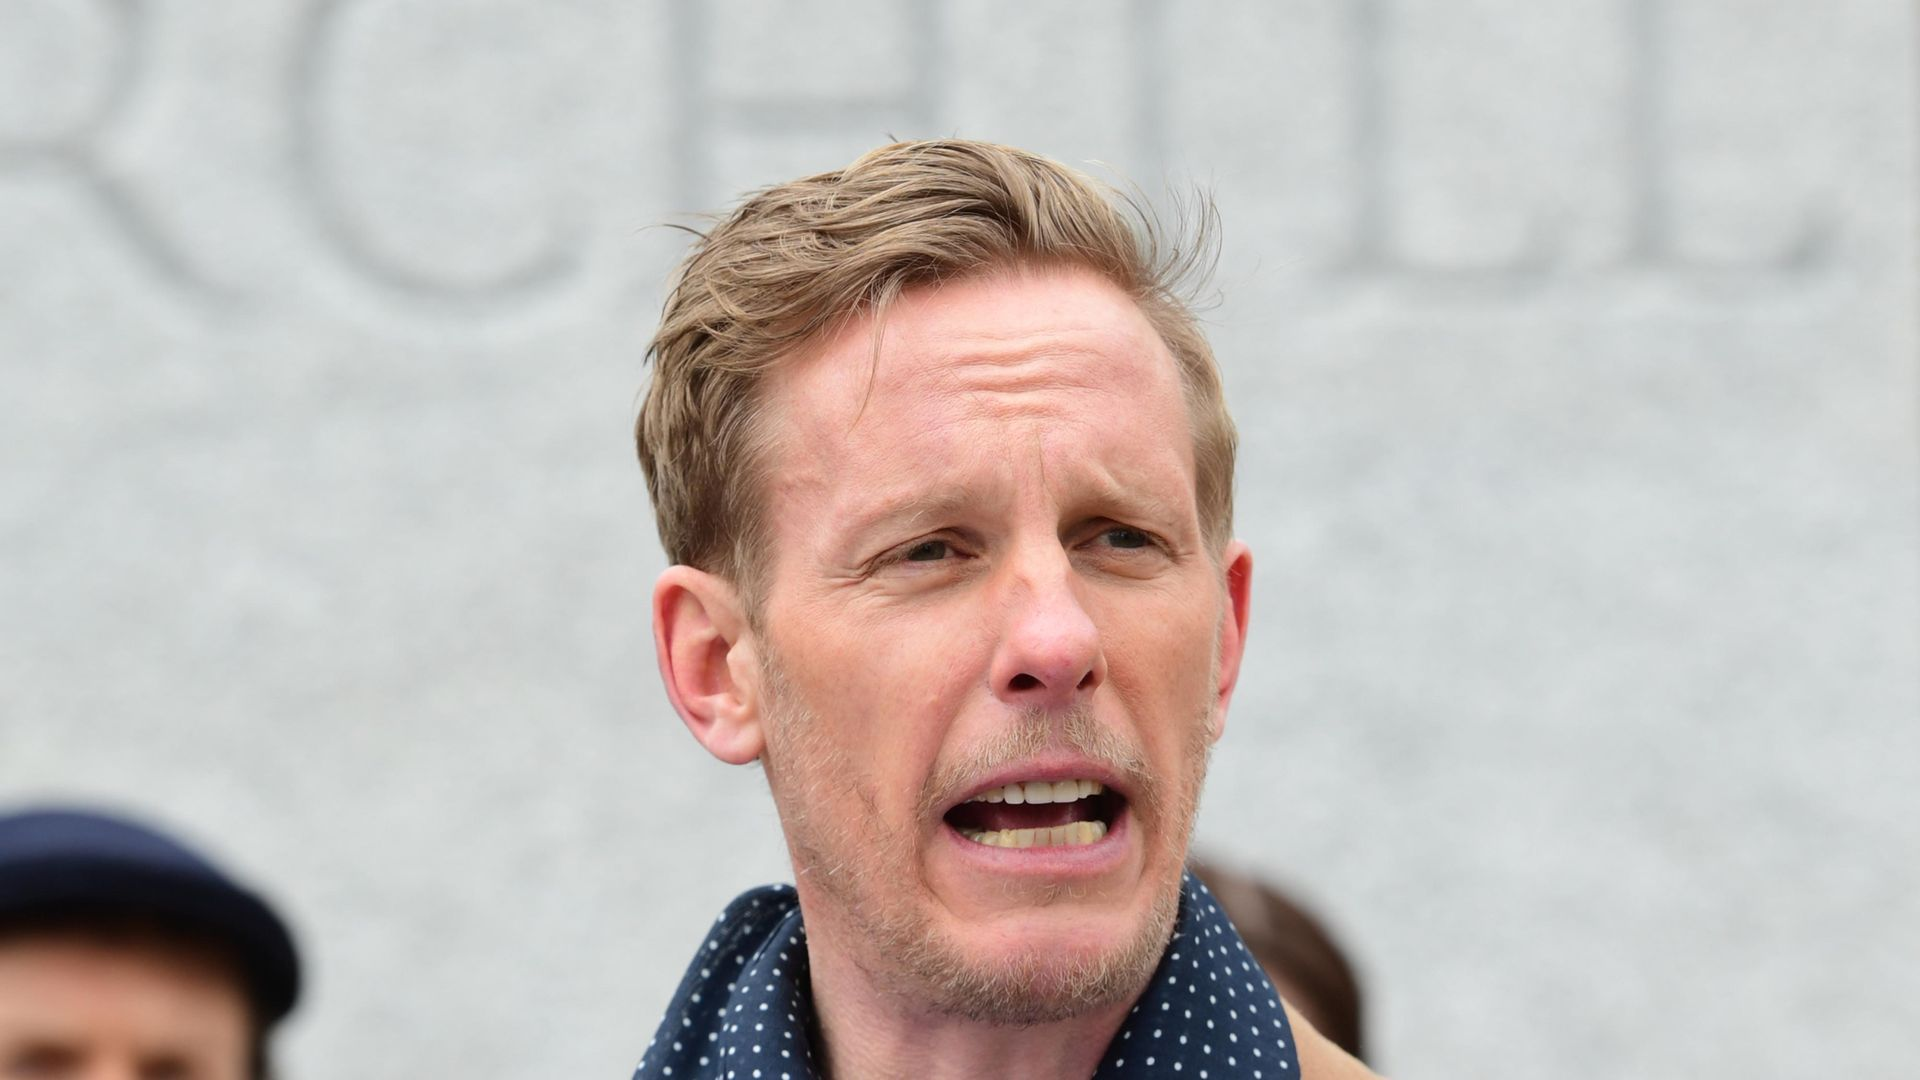 Leader of the Reclaim Party, Laurence Fox, at the launch of their party manifesto for the London Mayoral election, in Parliament Square, Westminster, central London - Credit: PA